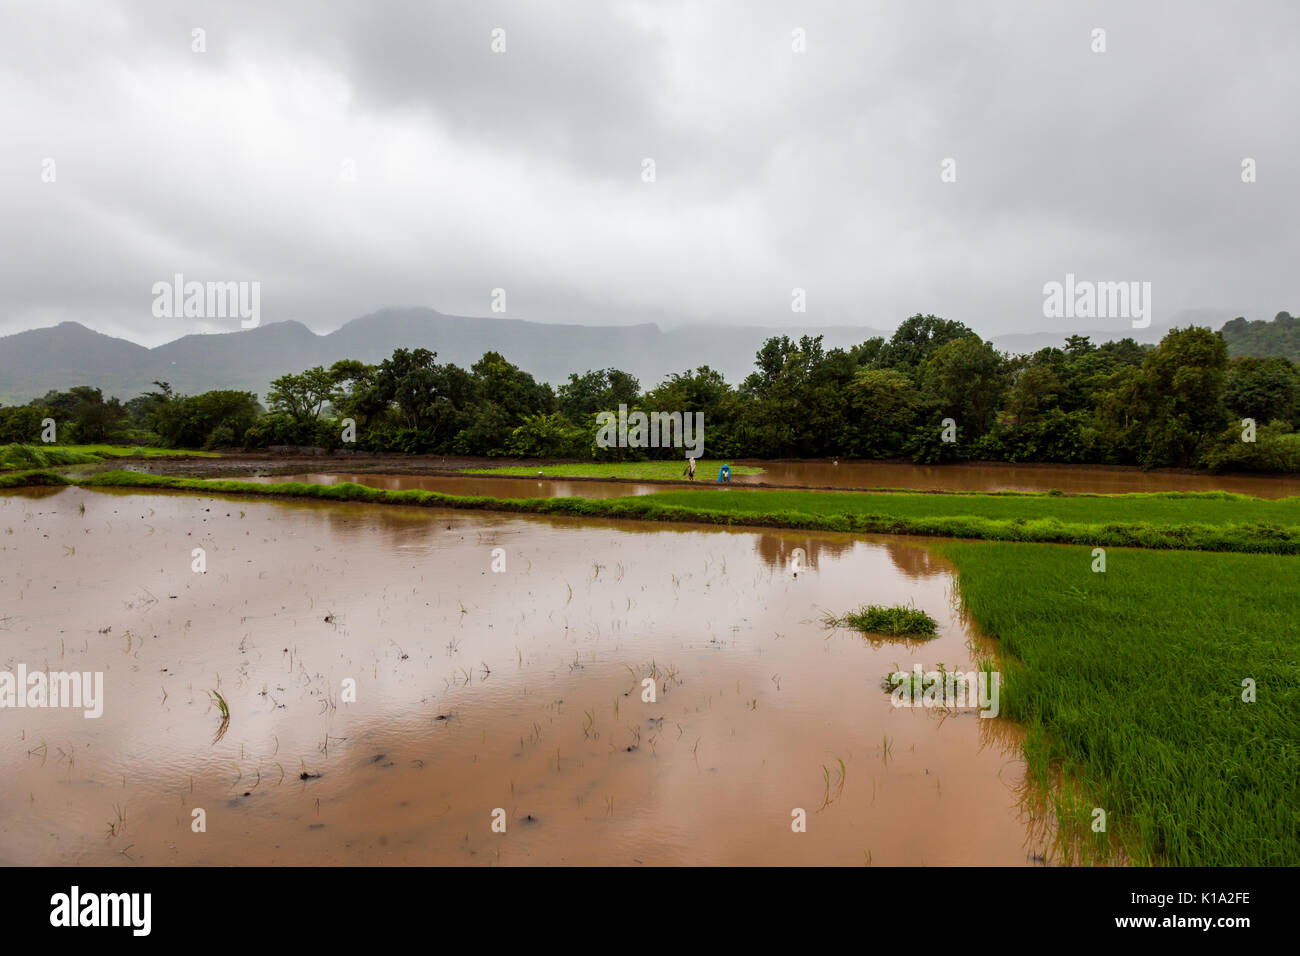 the india monsoon Learn all about the monsoon season rains and weather of the indian subcontinent and southern asia.